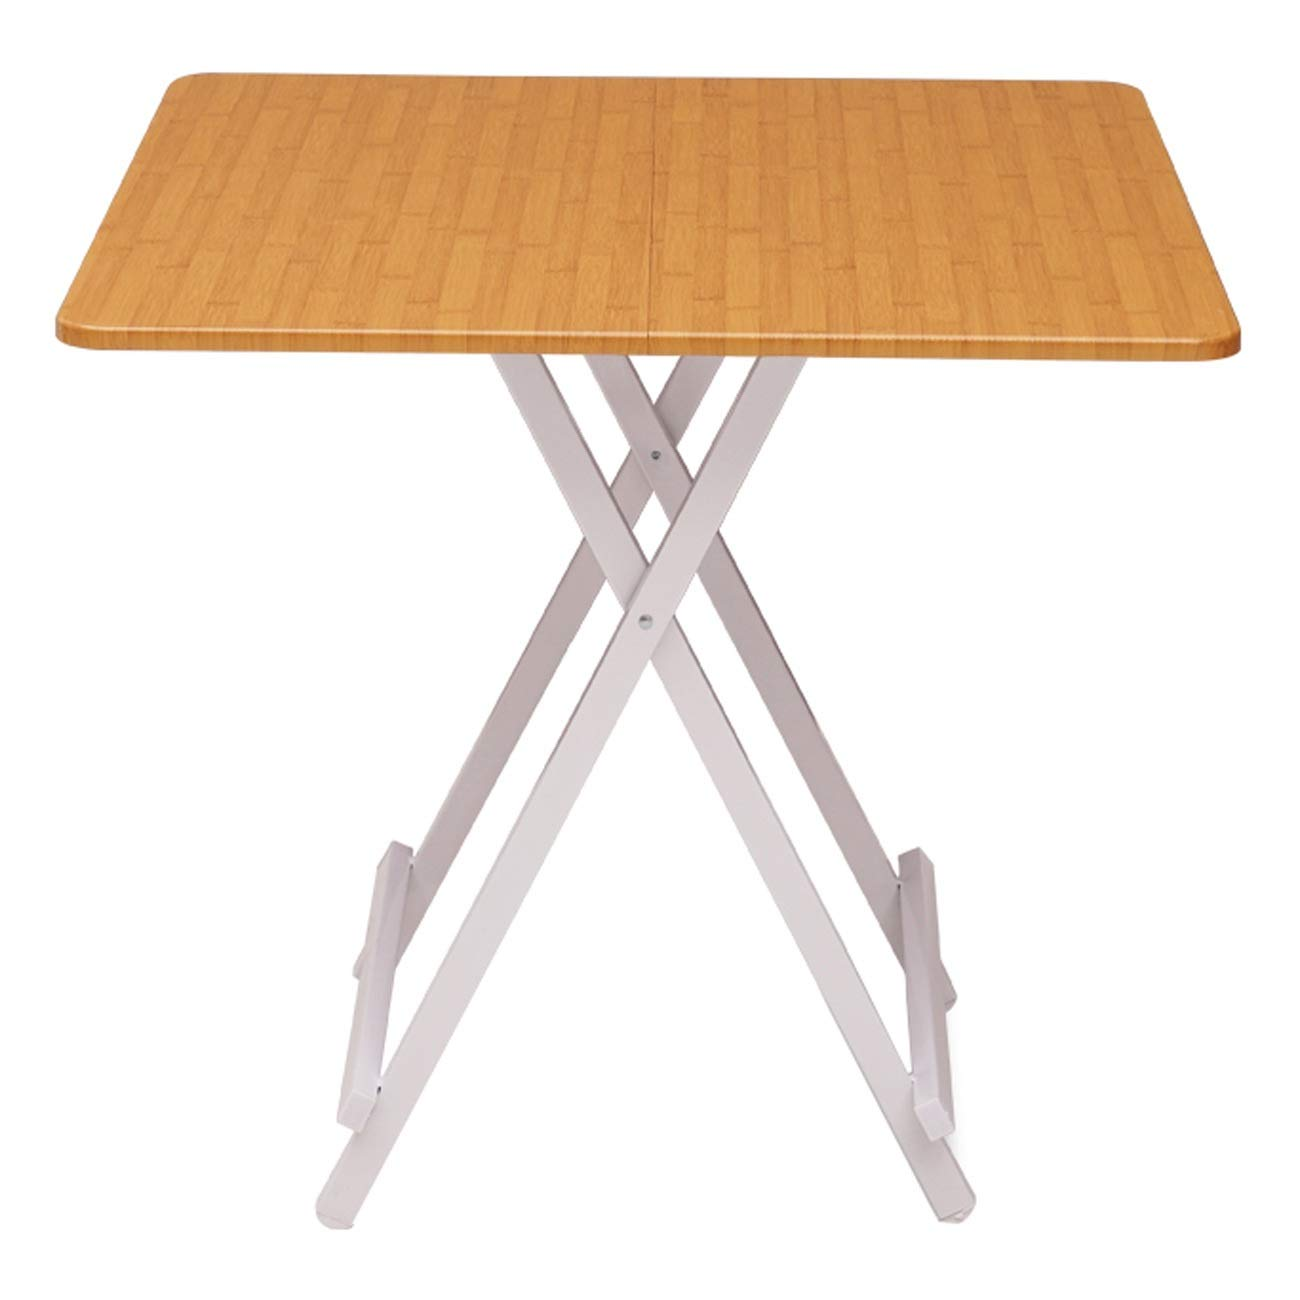 orange A Folding Table Portable Outdoor Stall Table Indoor Multi-Function Table, Multi-color Size Optional (color   Wood color, Size   A)